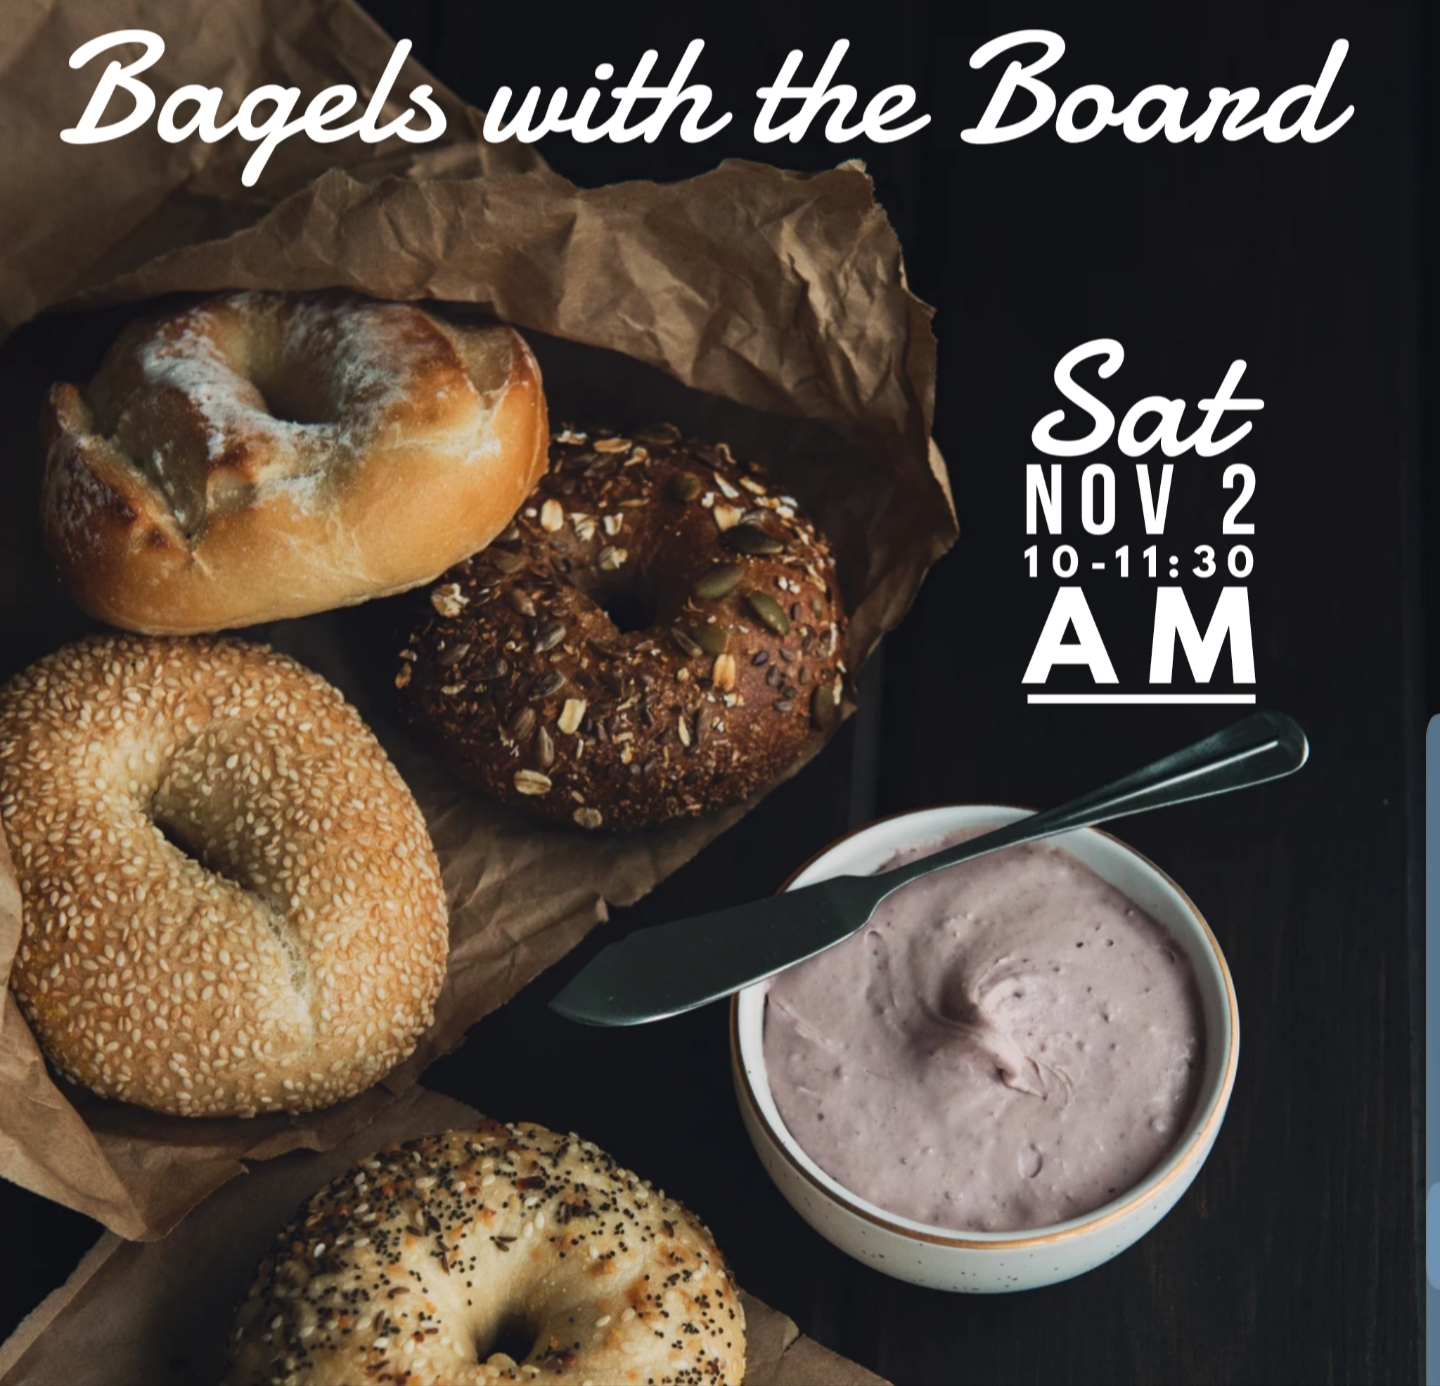 Bagels with the Board Flyer Photo